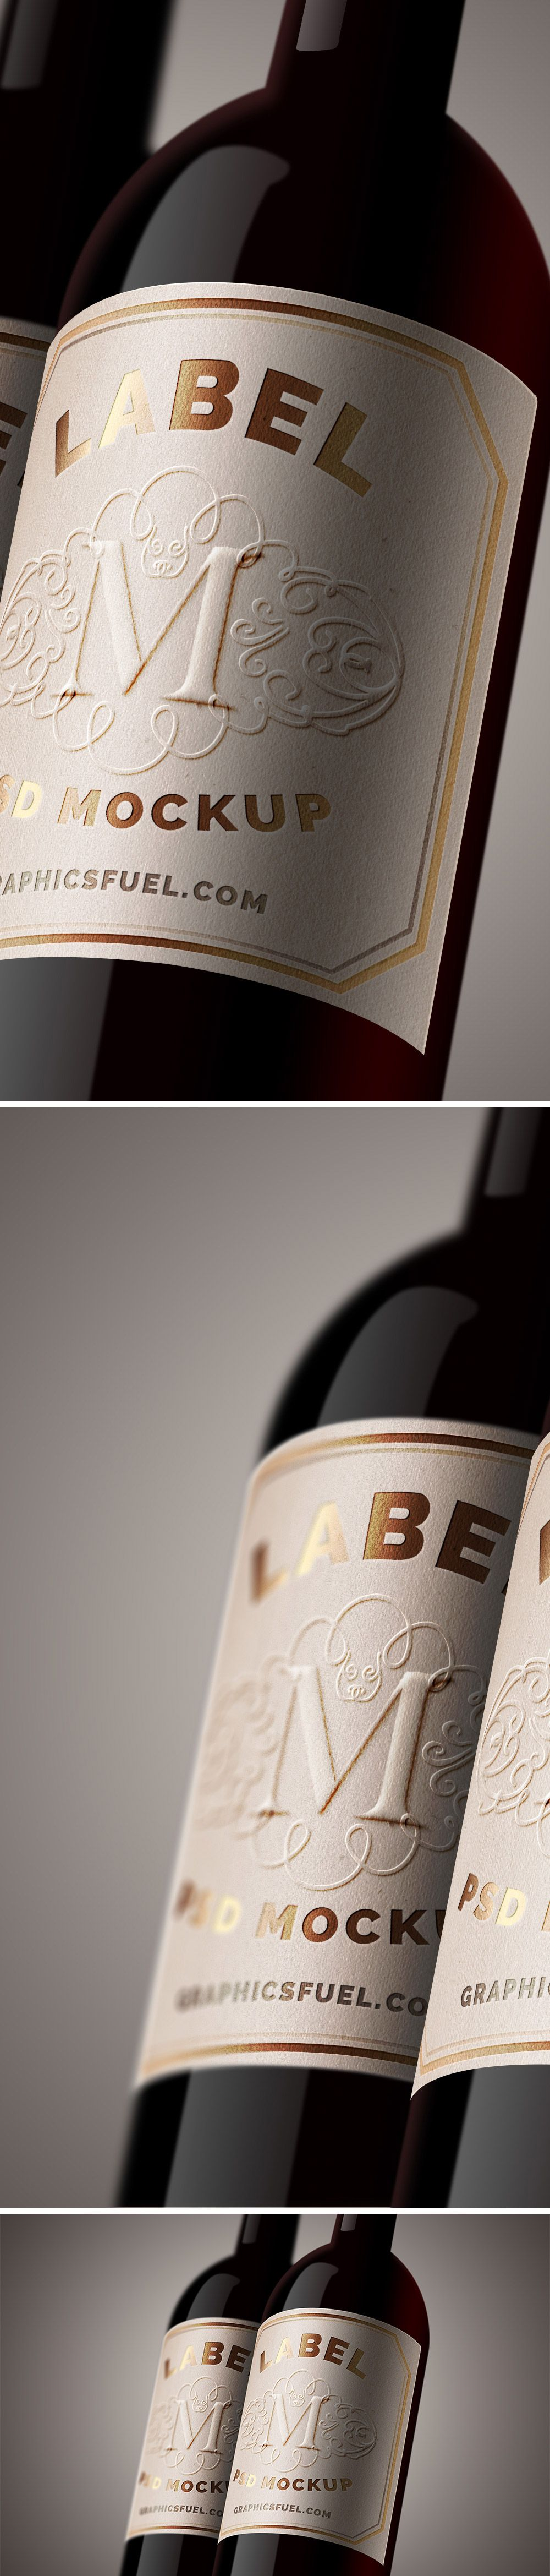 Today, Weu0027re Delighted To Introduce To You Free Wine Bottle Label PSD  Mockup Which Allows You To Present Your Wine Bottle Label In An Authentic  And ...  Free Wine Label Template